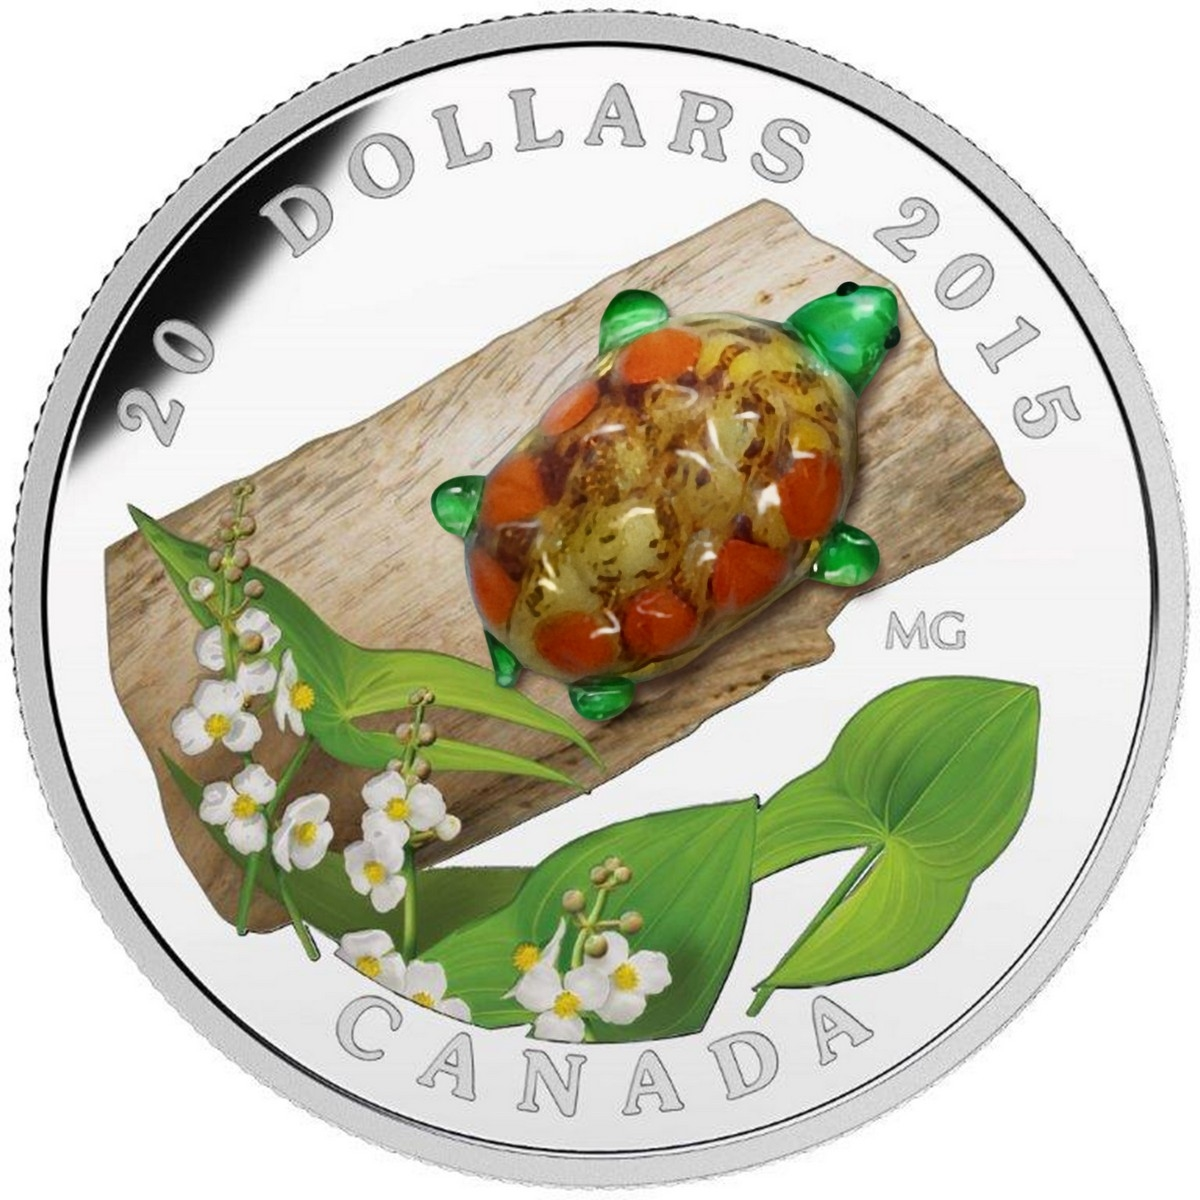 CANADA 2015 $20 Fine Silver Coin - Turtle with Broadleaf Arrowhead Flower - Venetian Glass Series - #5 In Series